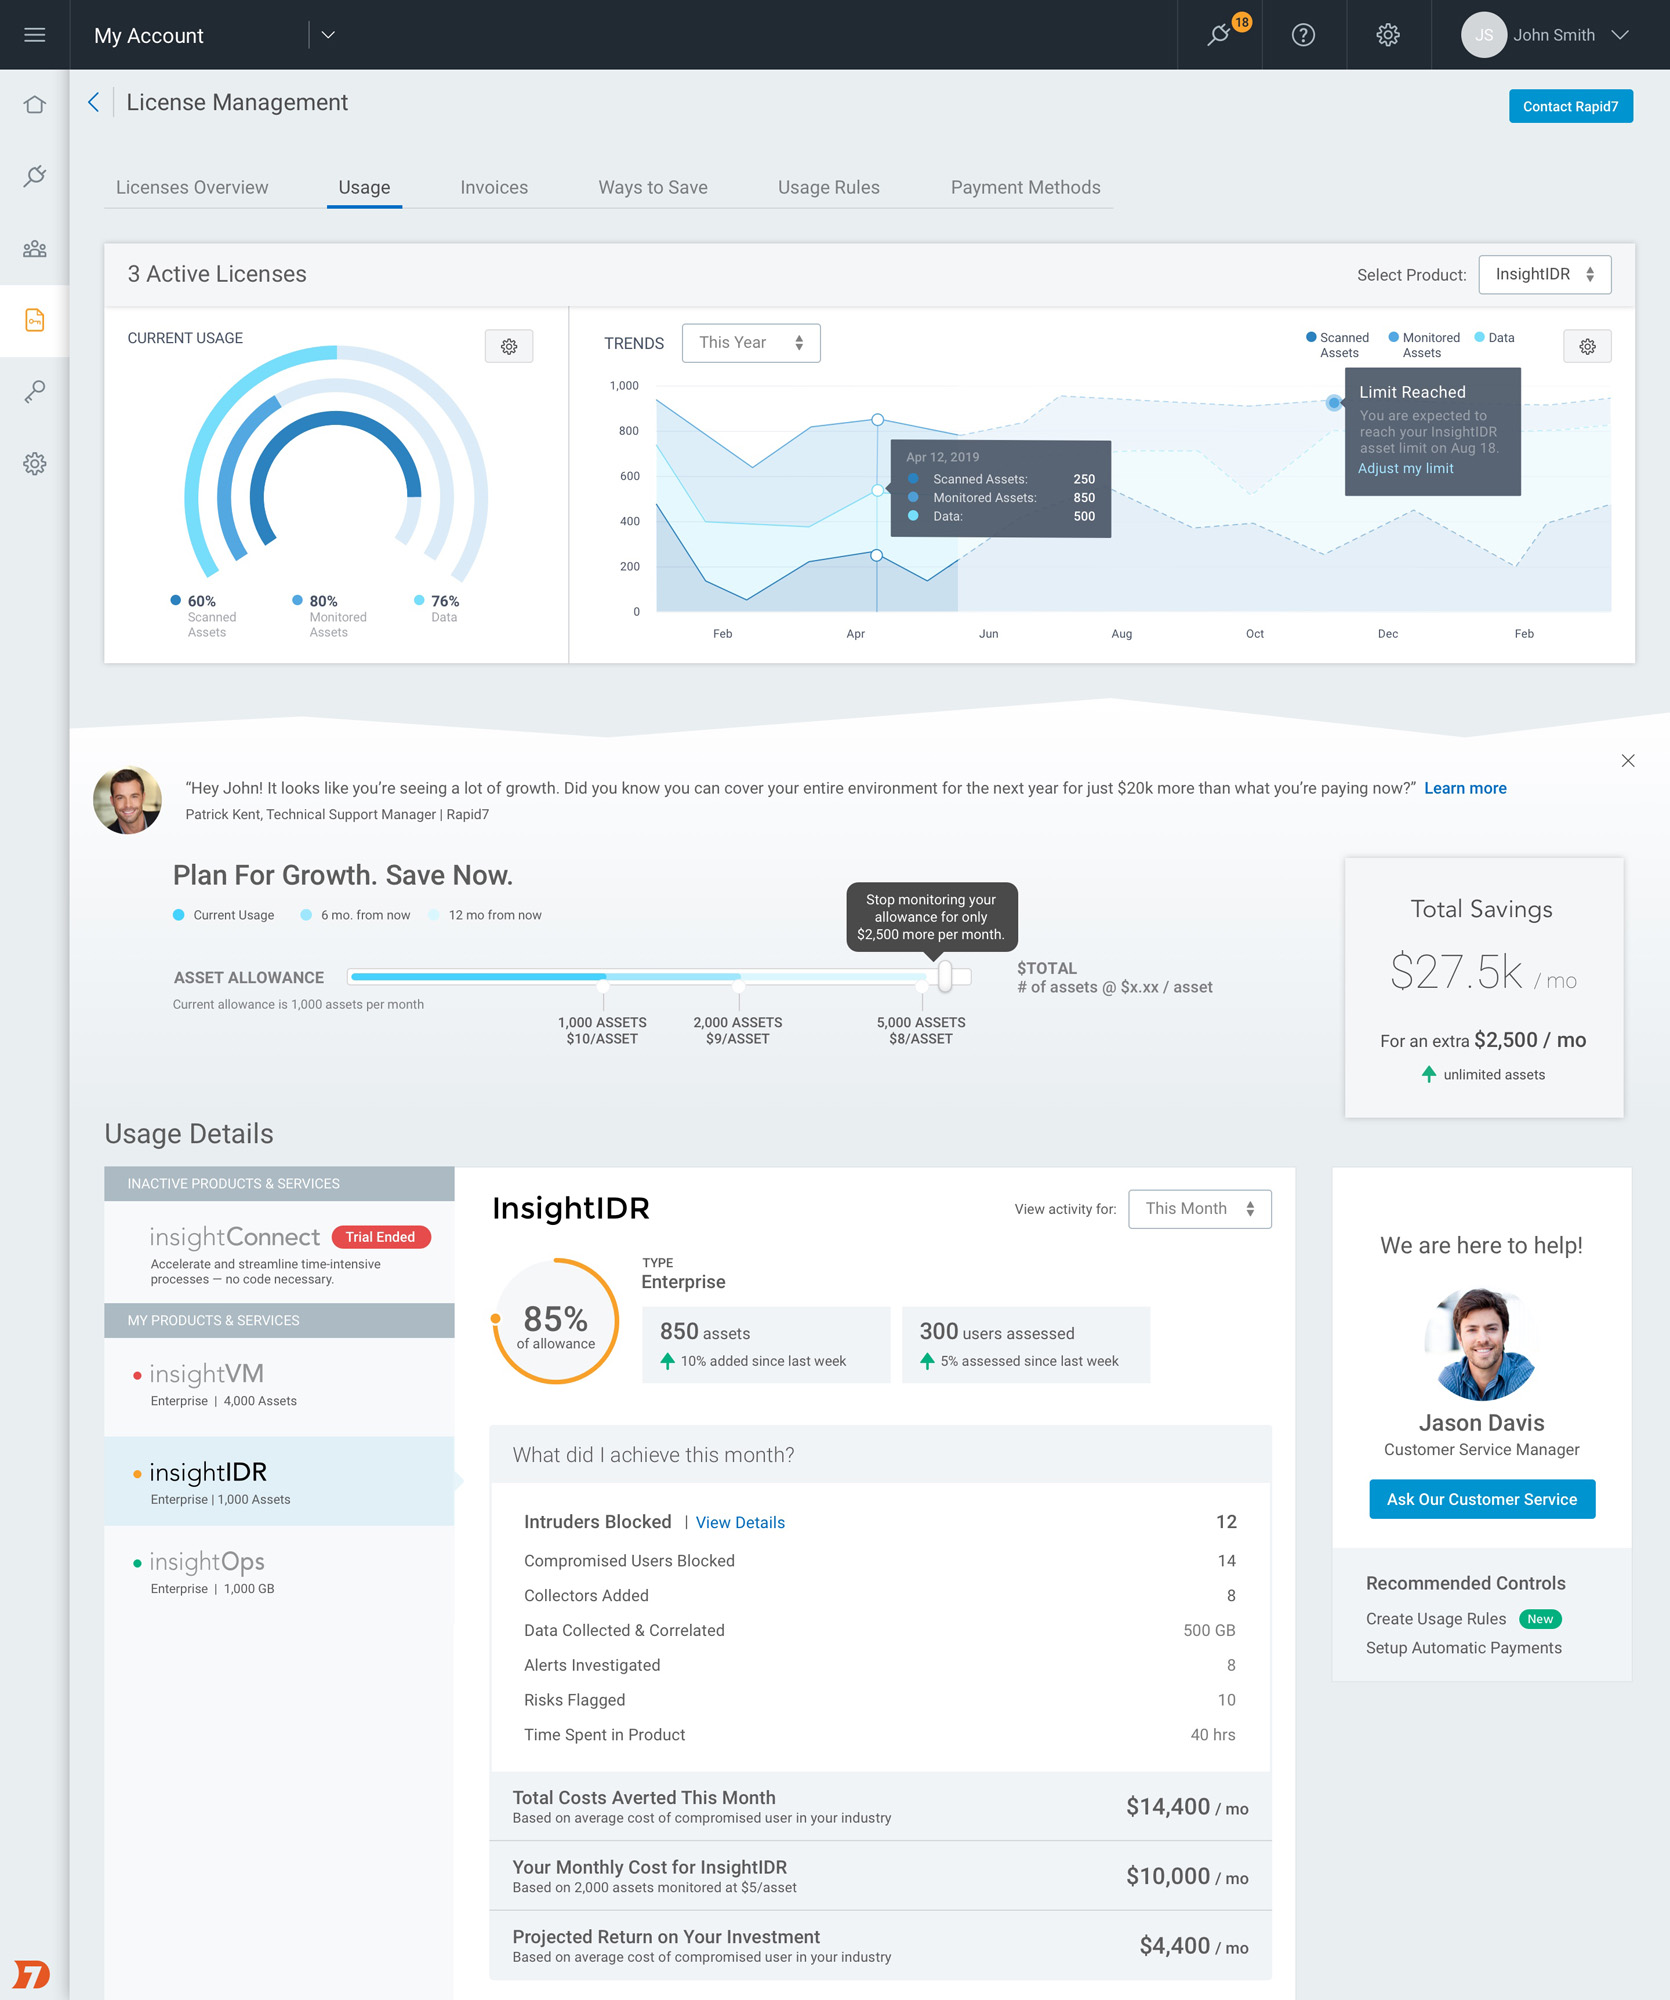 Rapid7 cloud platform interface with a view of license usage data.